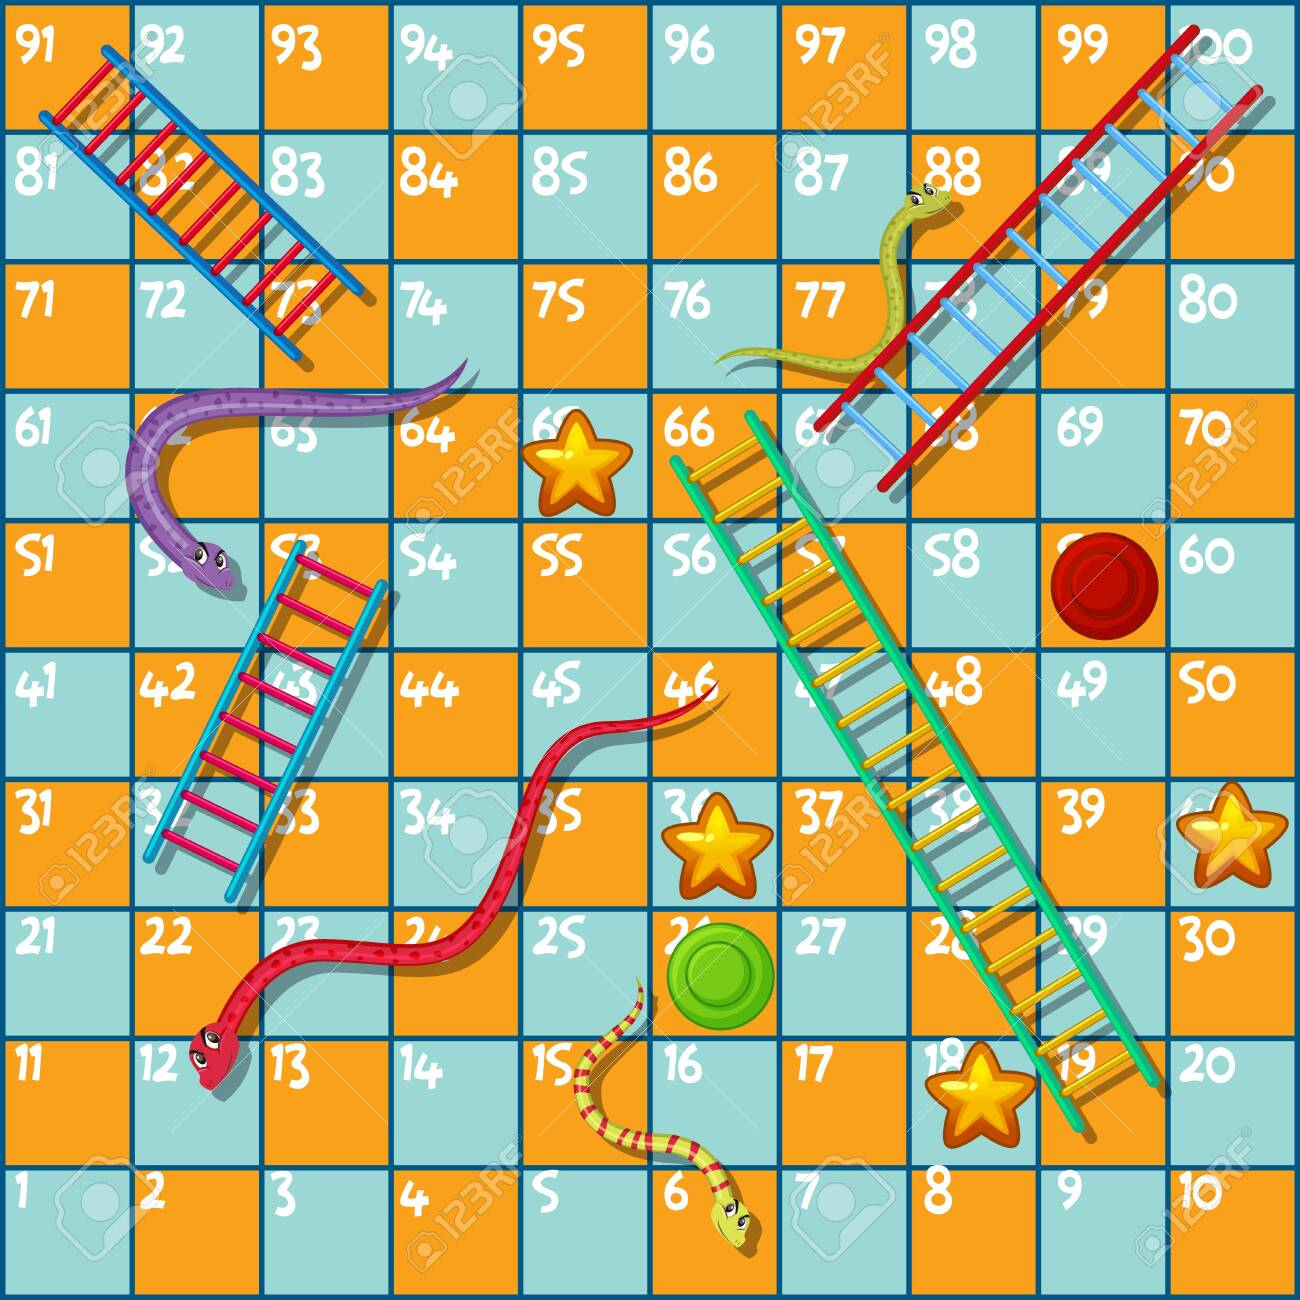 Boardgame Design Template With Snakes And Ladder Illustration Royalty Free Cliparts Vectors And Stock Illustration Image 132644444